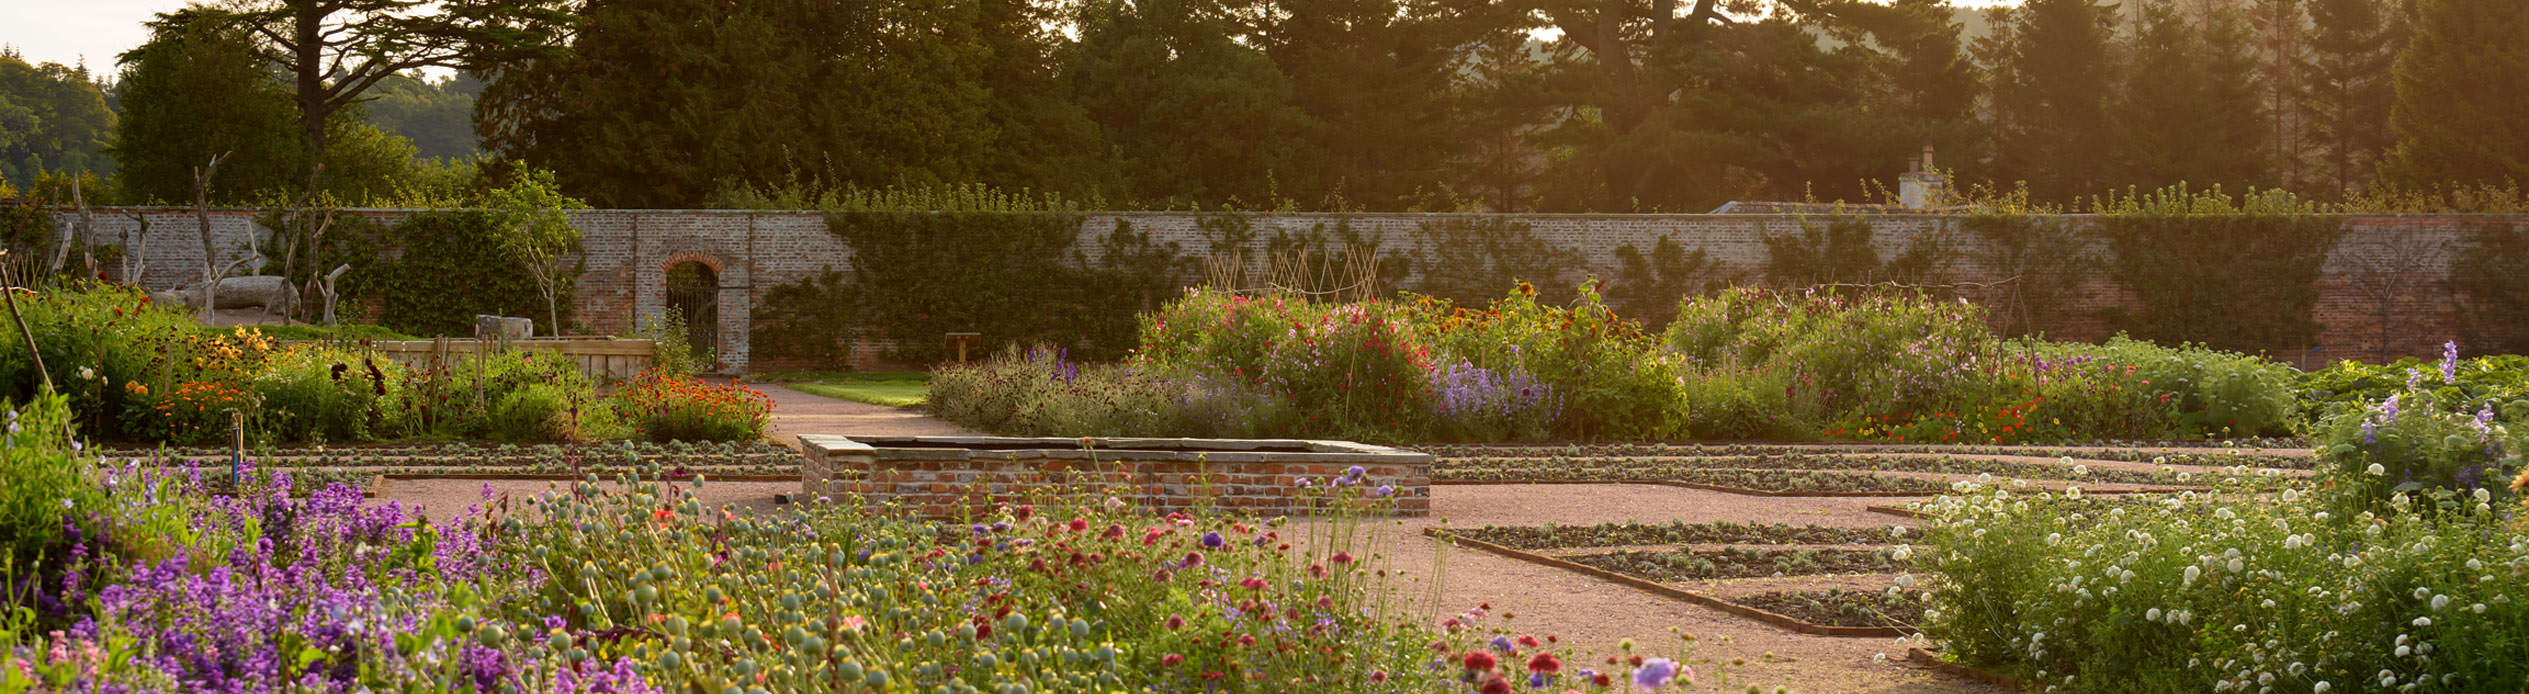 Gordon Castle and Walled Garden | The Walled Garden